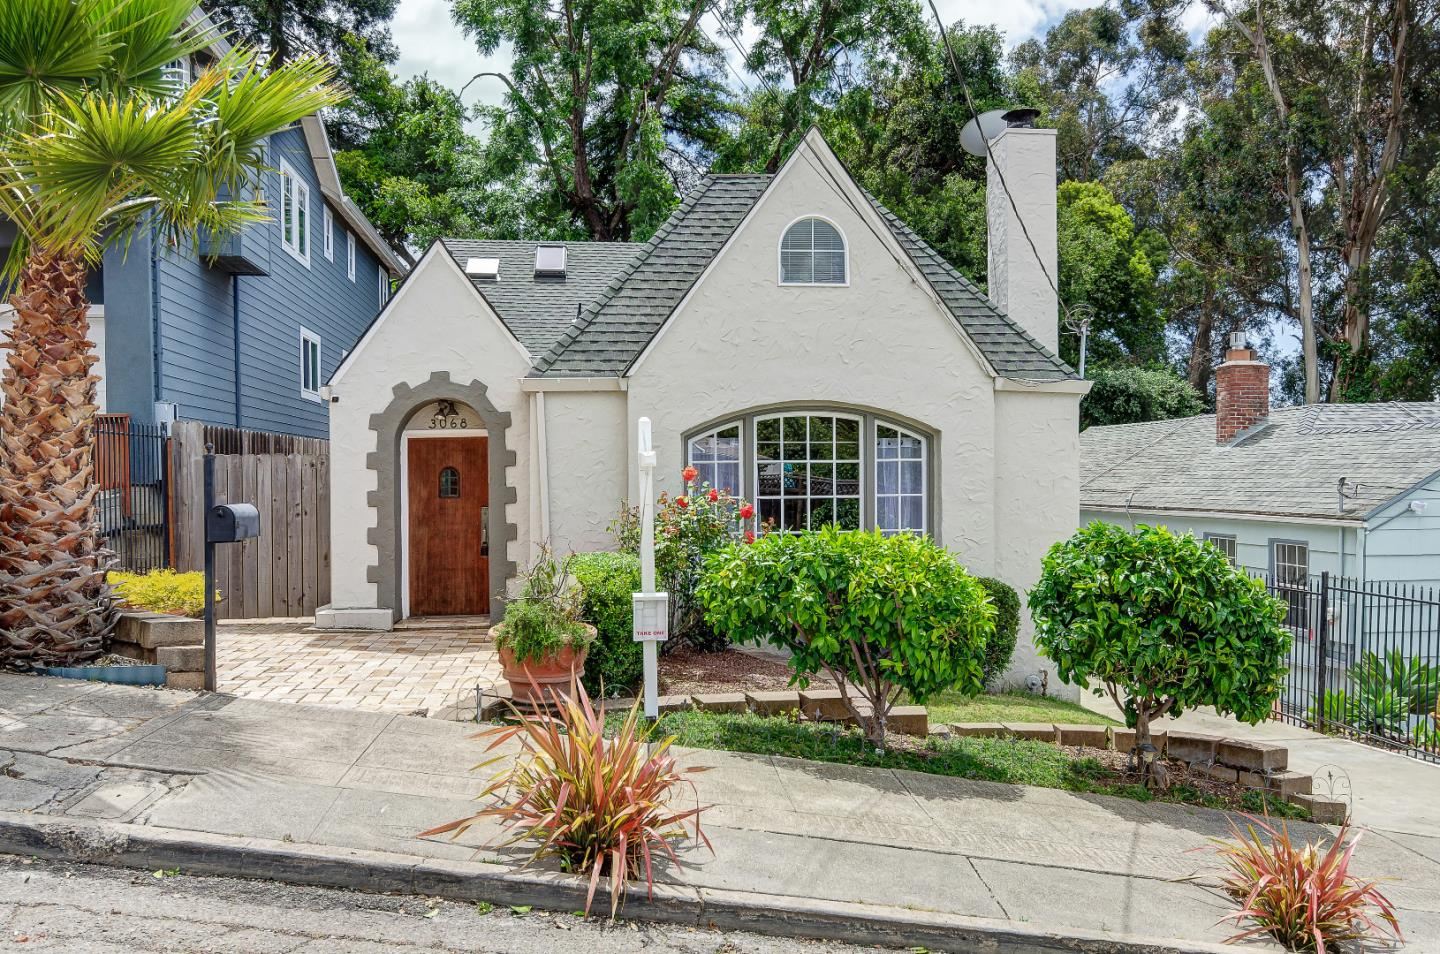 Image for 3068 Tully Place, <br>Oakland 94605